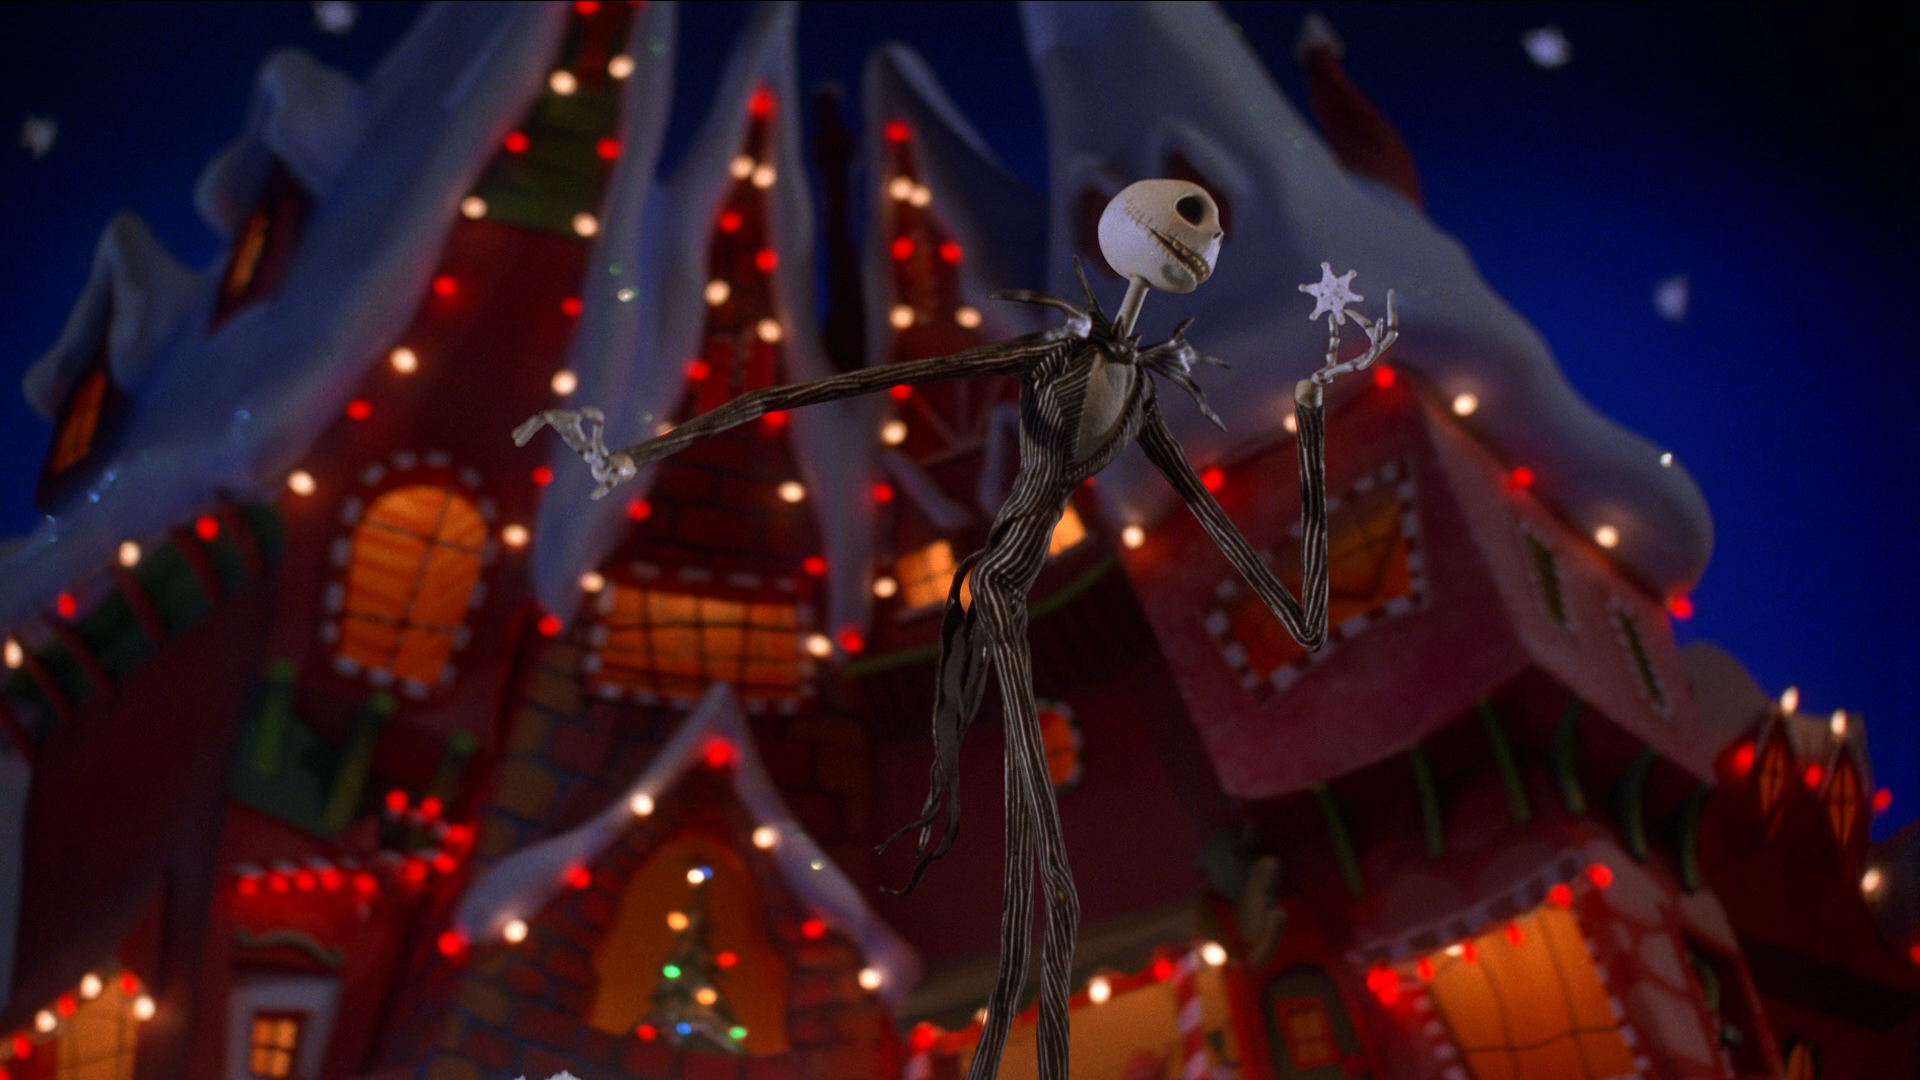 The Nightmare Before Christmas Nightmare Before Christmas Nightmare Before Christmas Tattoo Disney Images